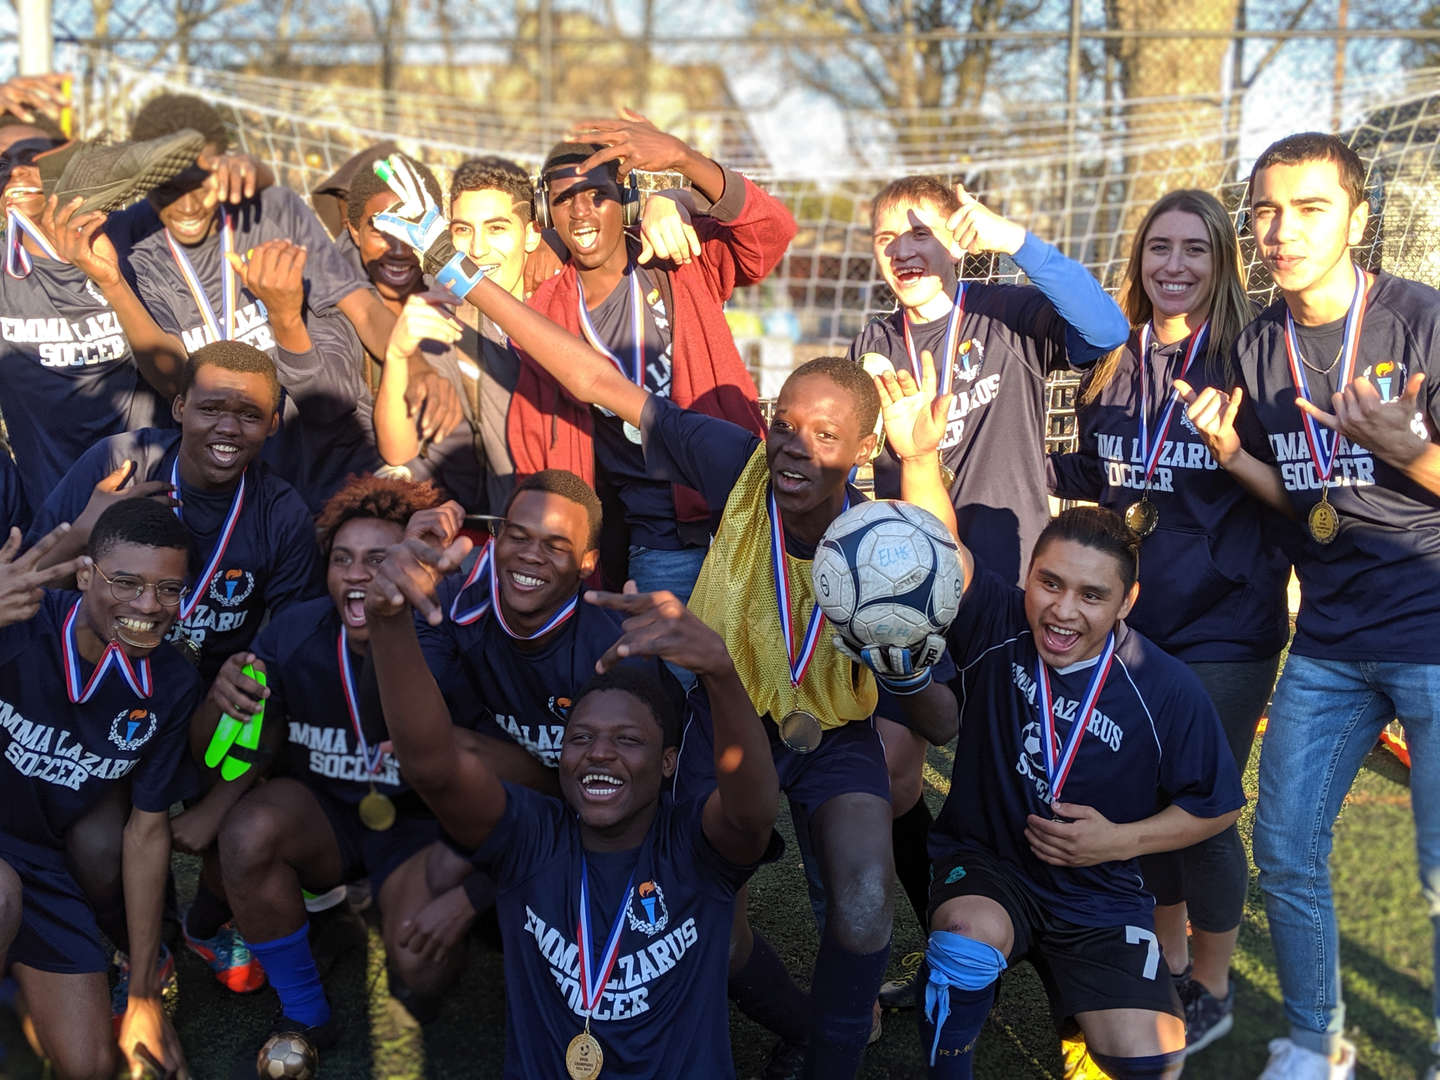 Soccer team celebrating championship